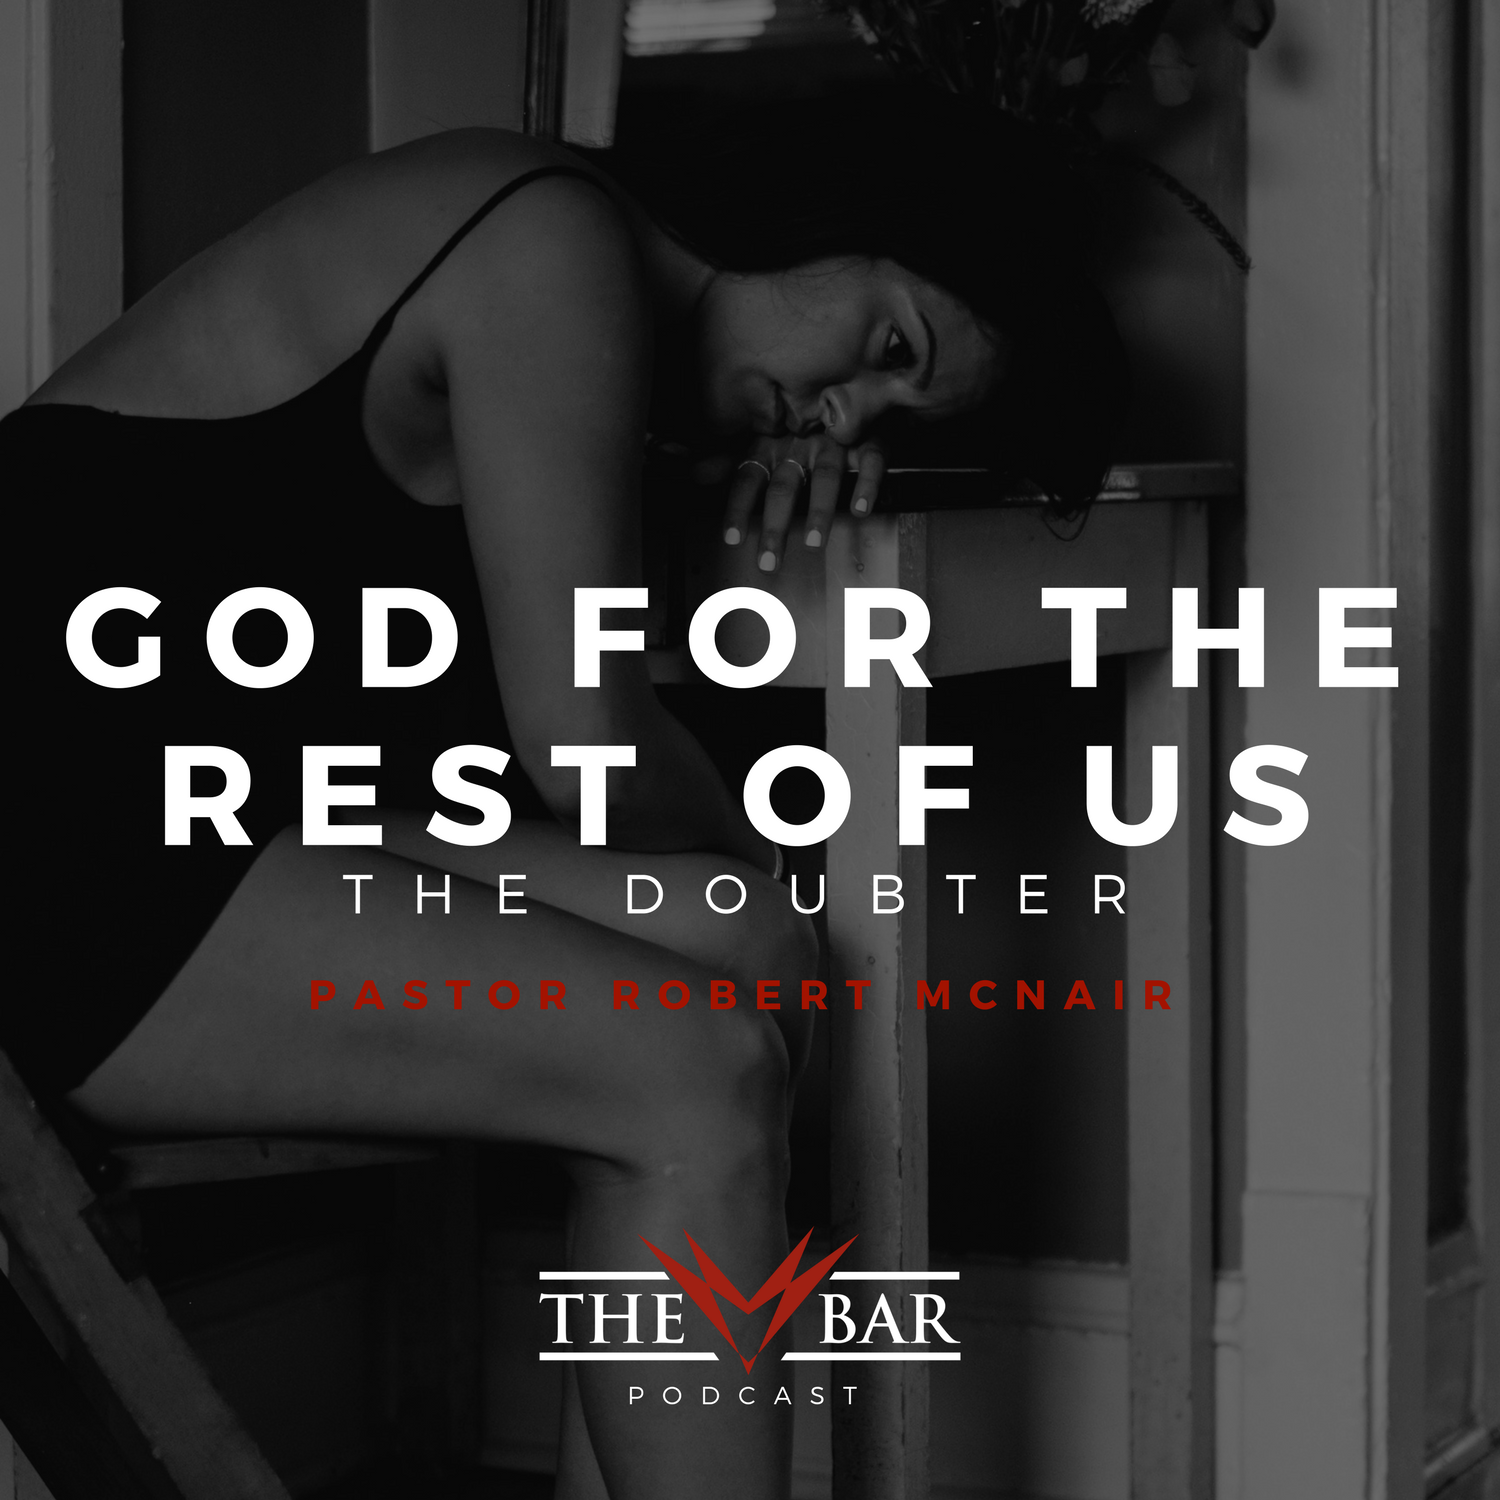 The-BAR-Podcast-God-For-The-Doubter